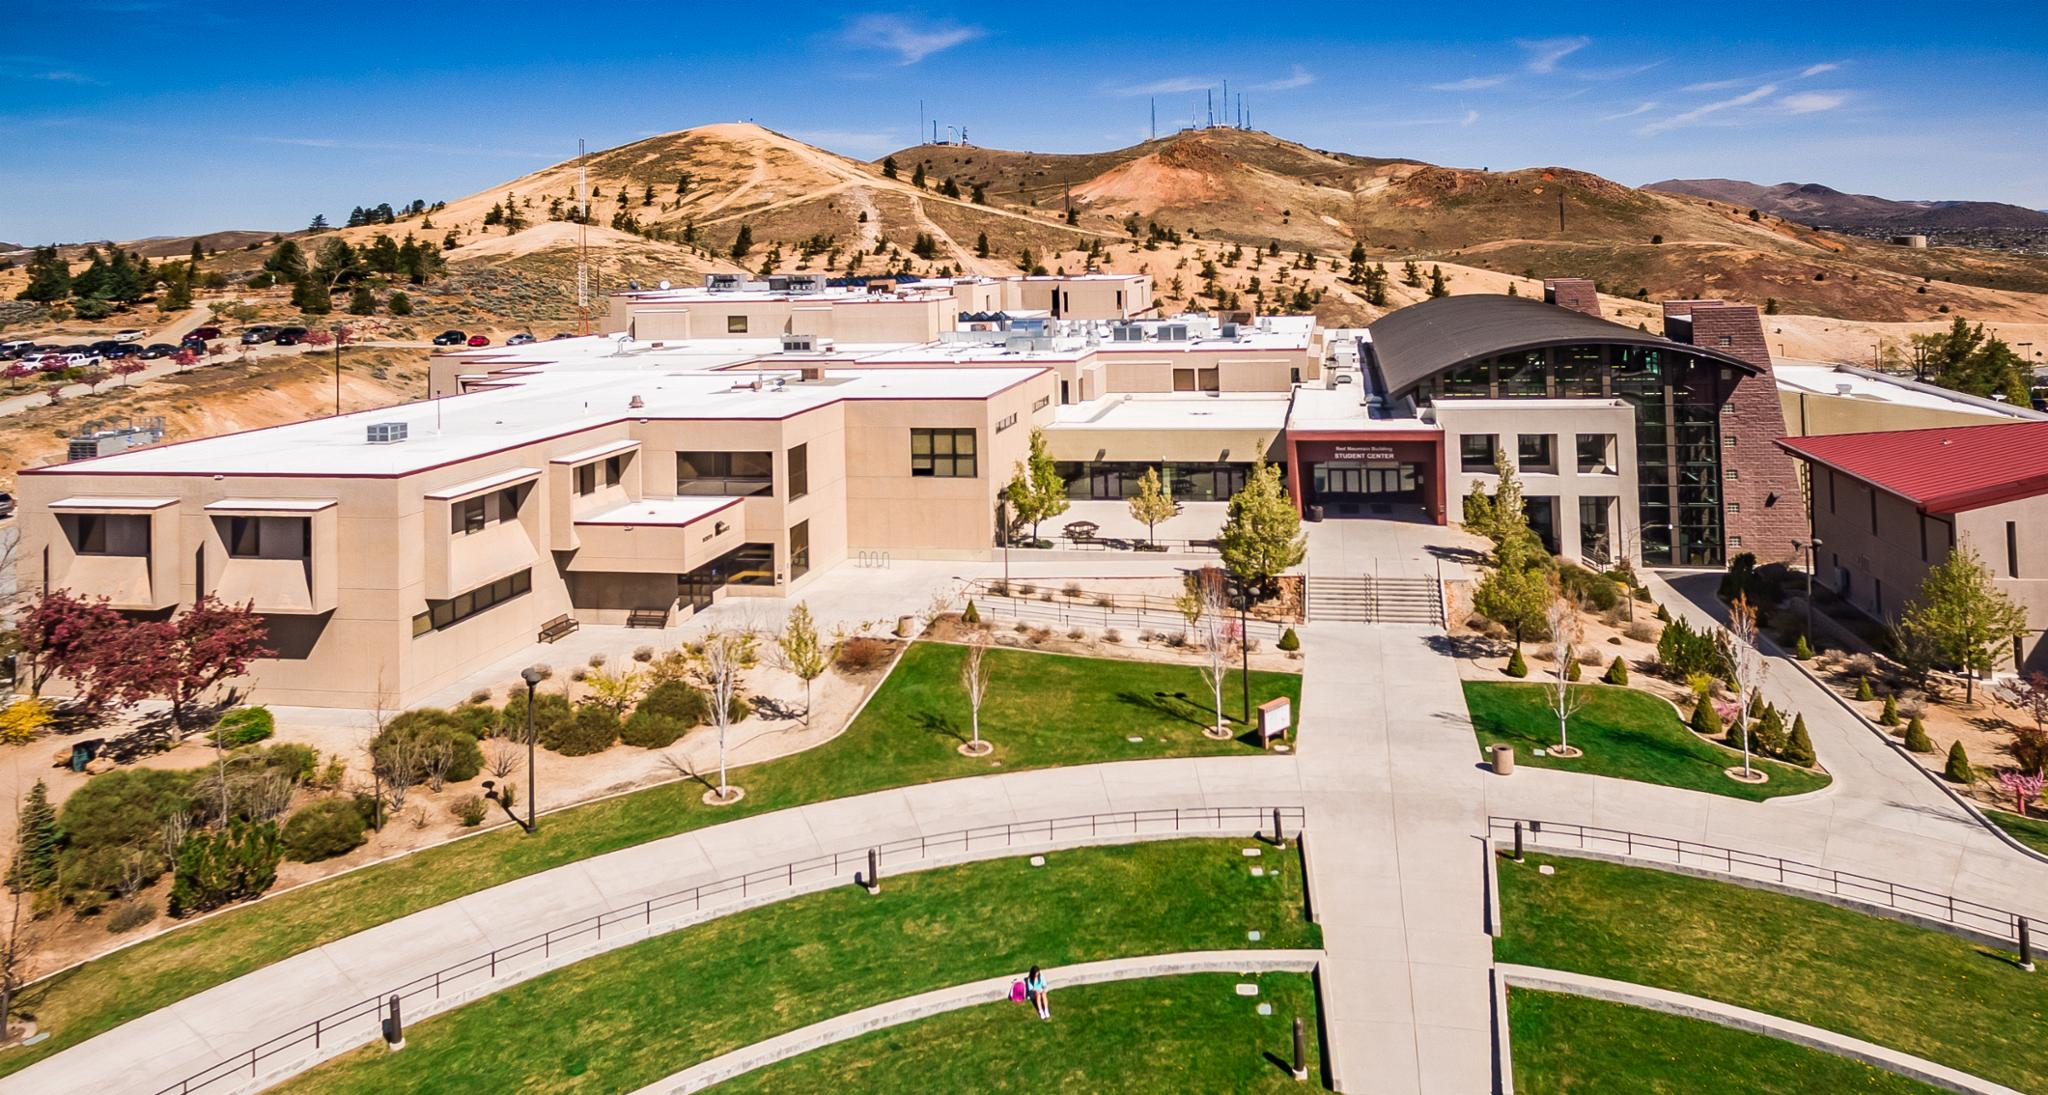 /en/noticia/post/what-international-students-say-about-studying-nevada